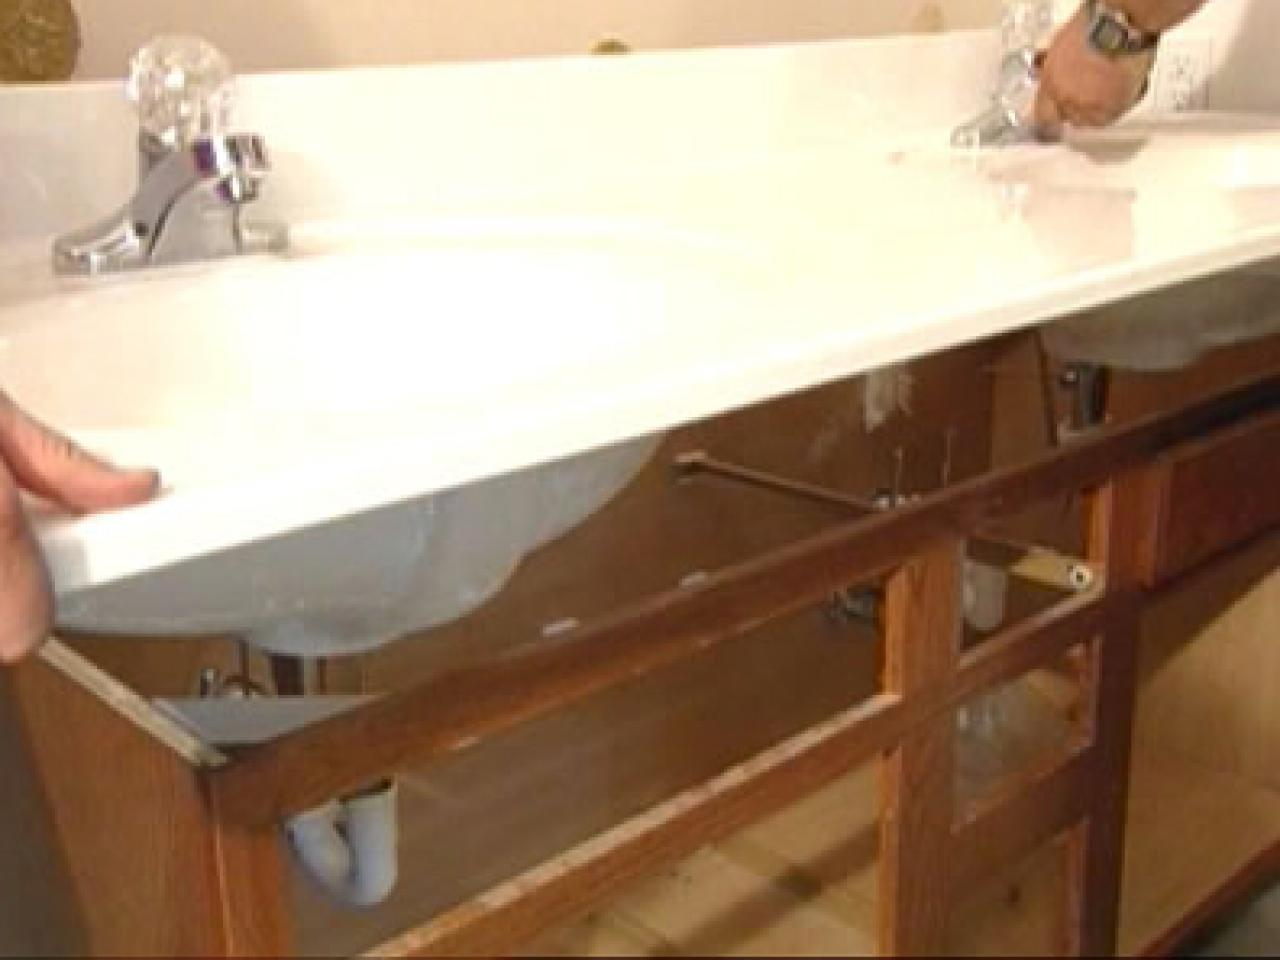 How To Demolish A Bathroom Howtos DIY - Bathroom reno steps